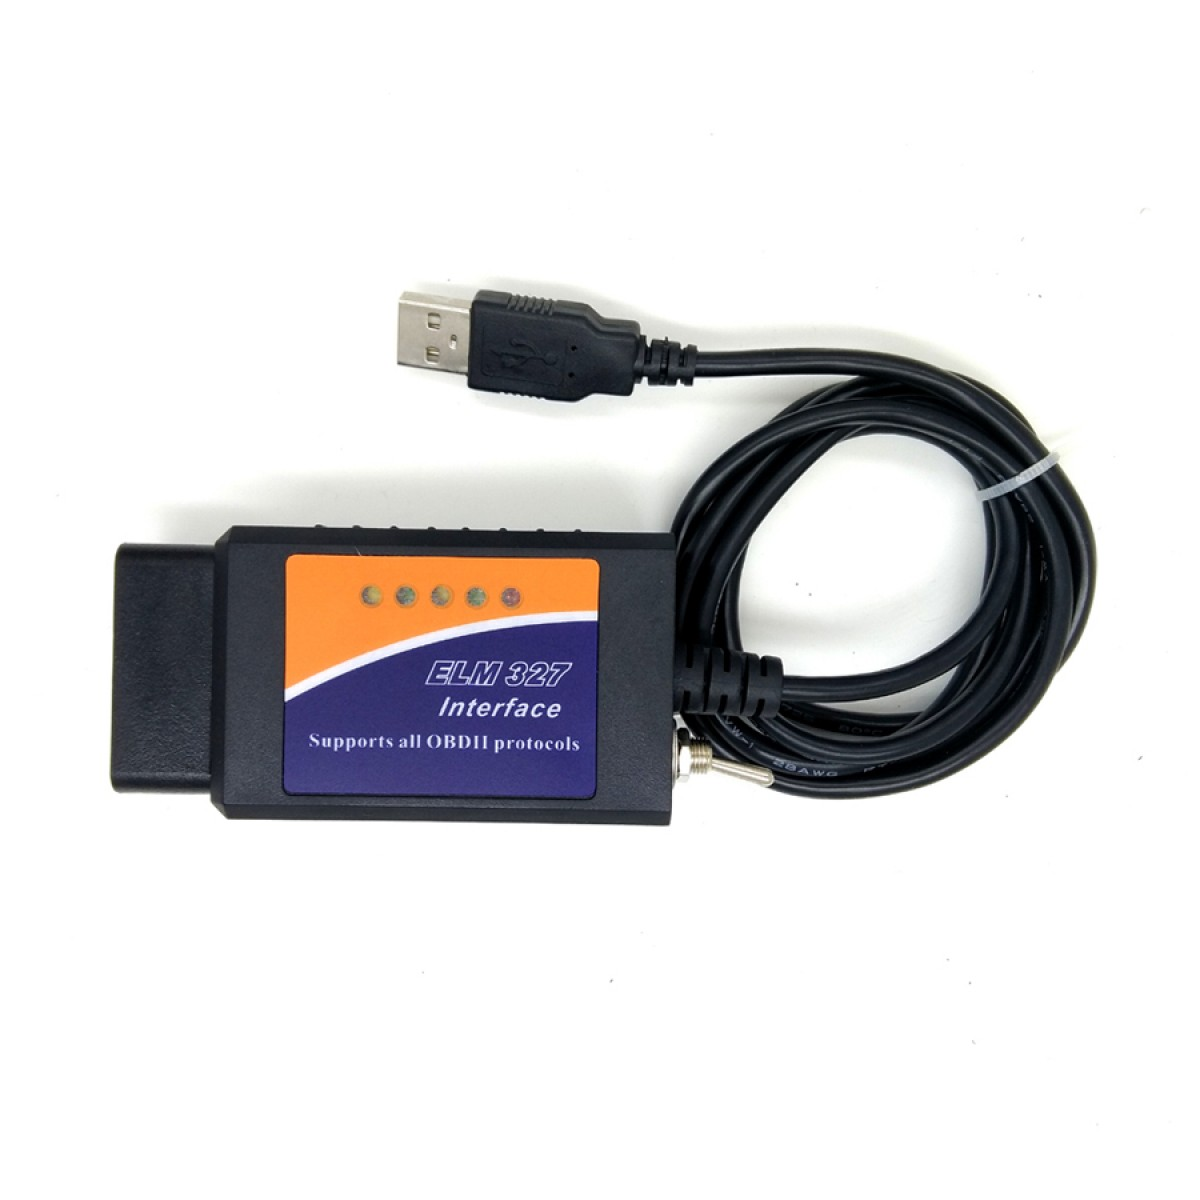 forscan elm 327 usb hs can ms can 25k80 ft232rl for ford elmconfig all products forscan elm 327 usb hs can ms can 25k80 ft232rl for ford elmconfig all products